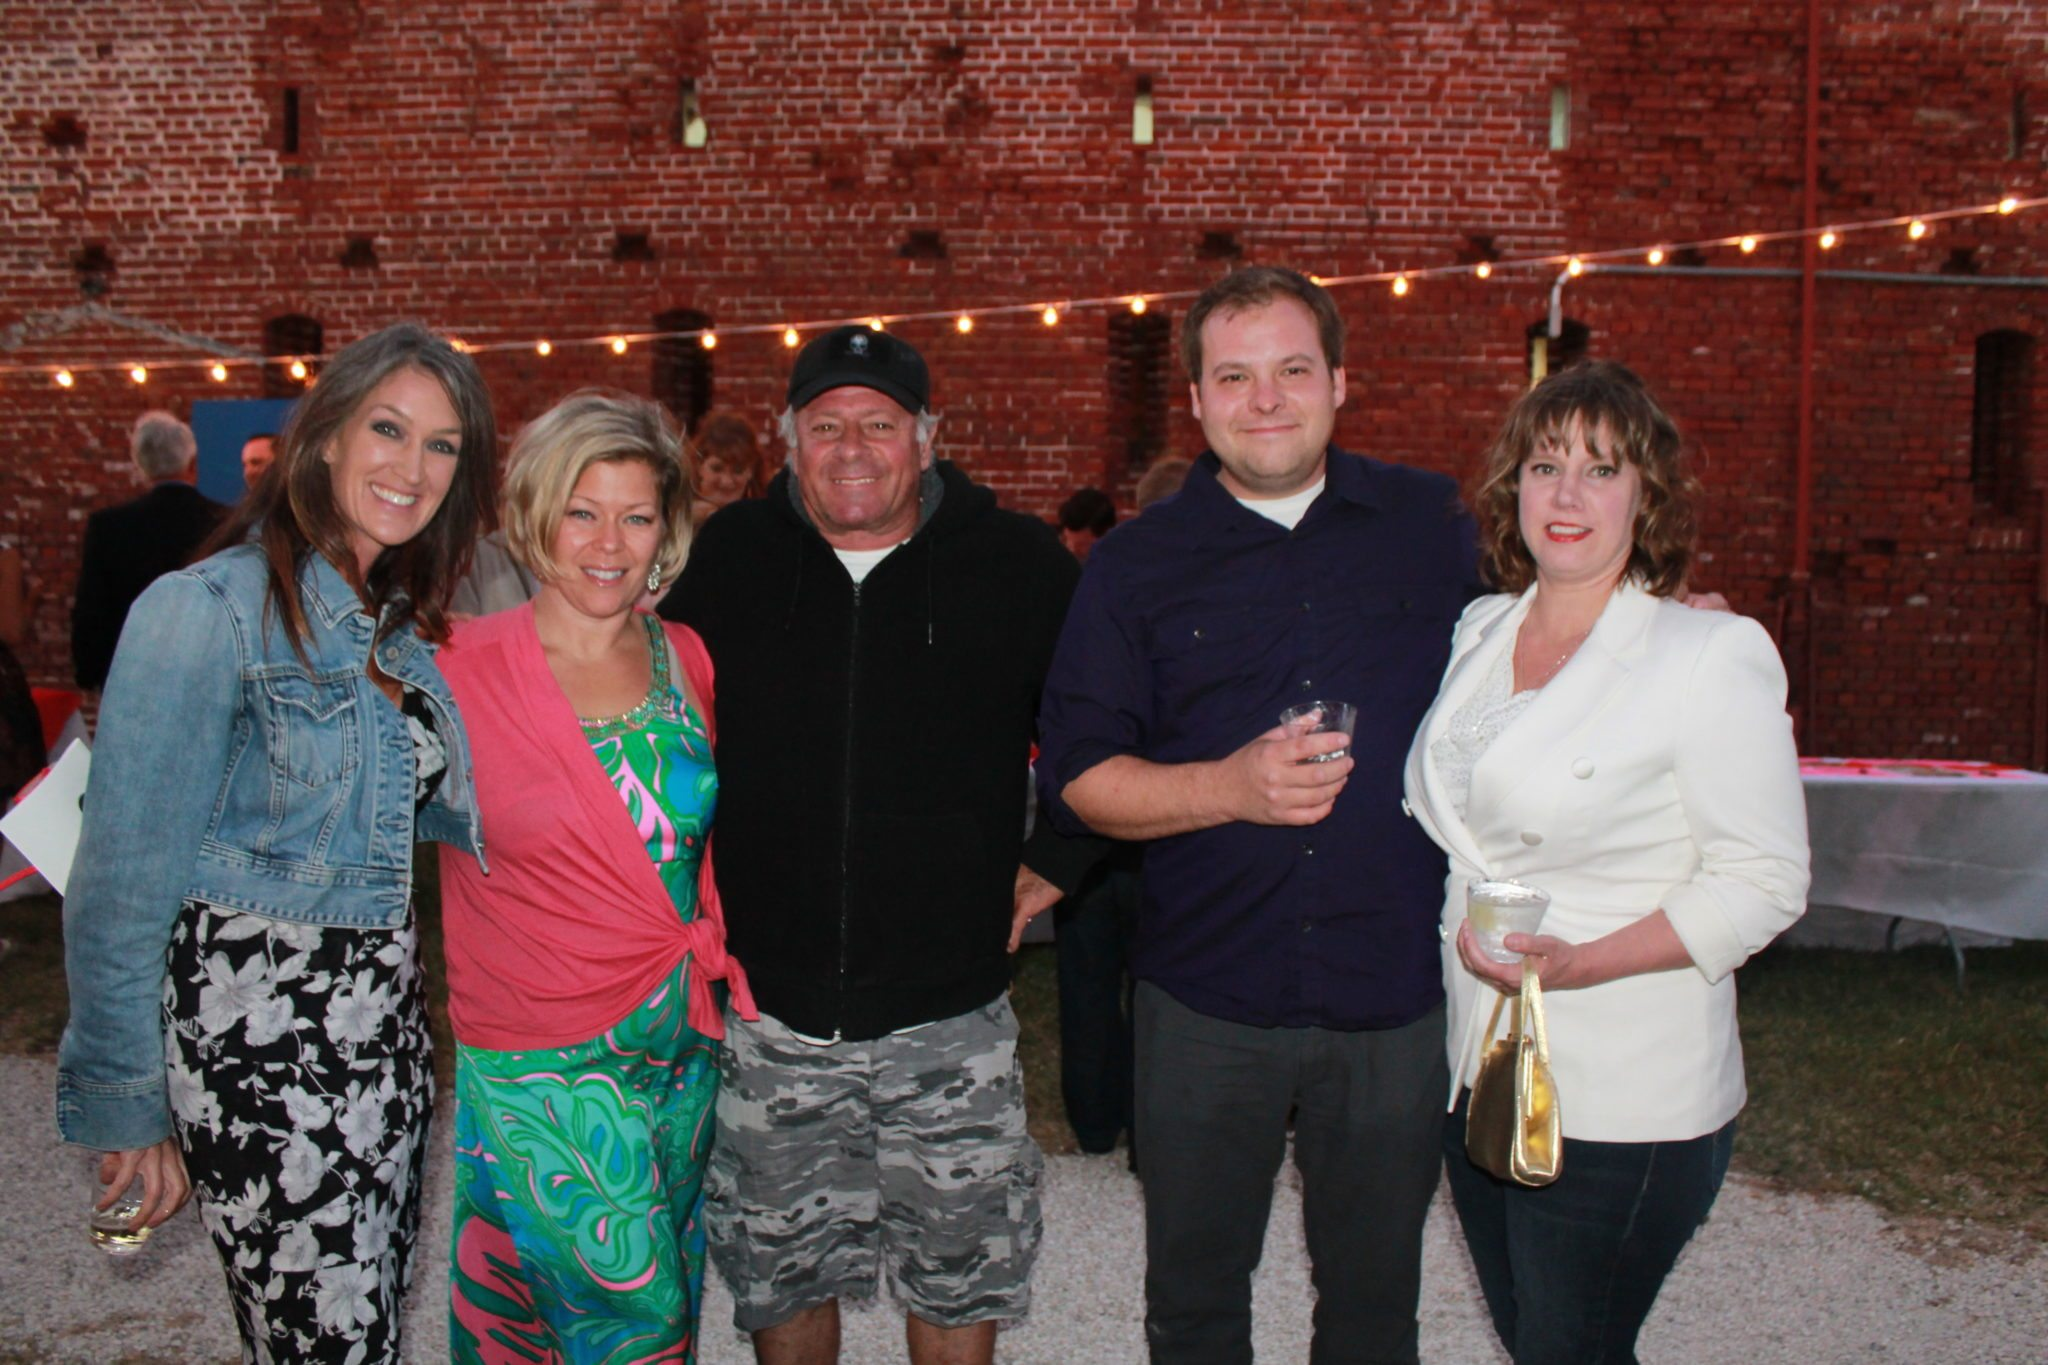 Teri Rossi, Michelle Maxwell, Sam 'the sound man' Zakoian, Tammy Fox and Matt Royer are just a few of the many notable faces at the Gala.